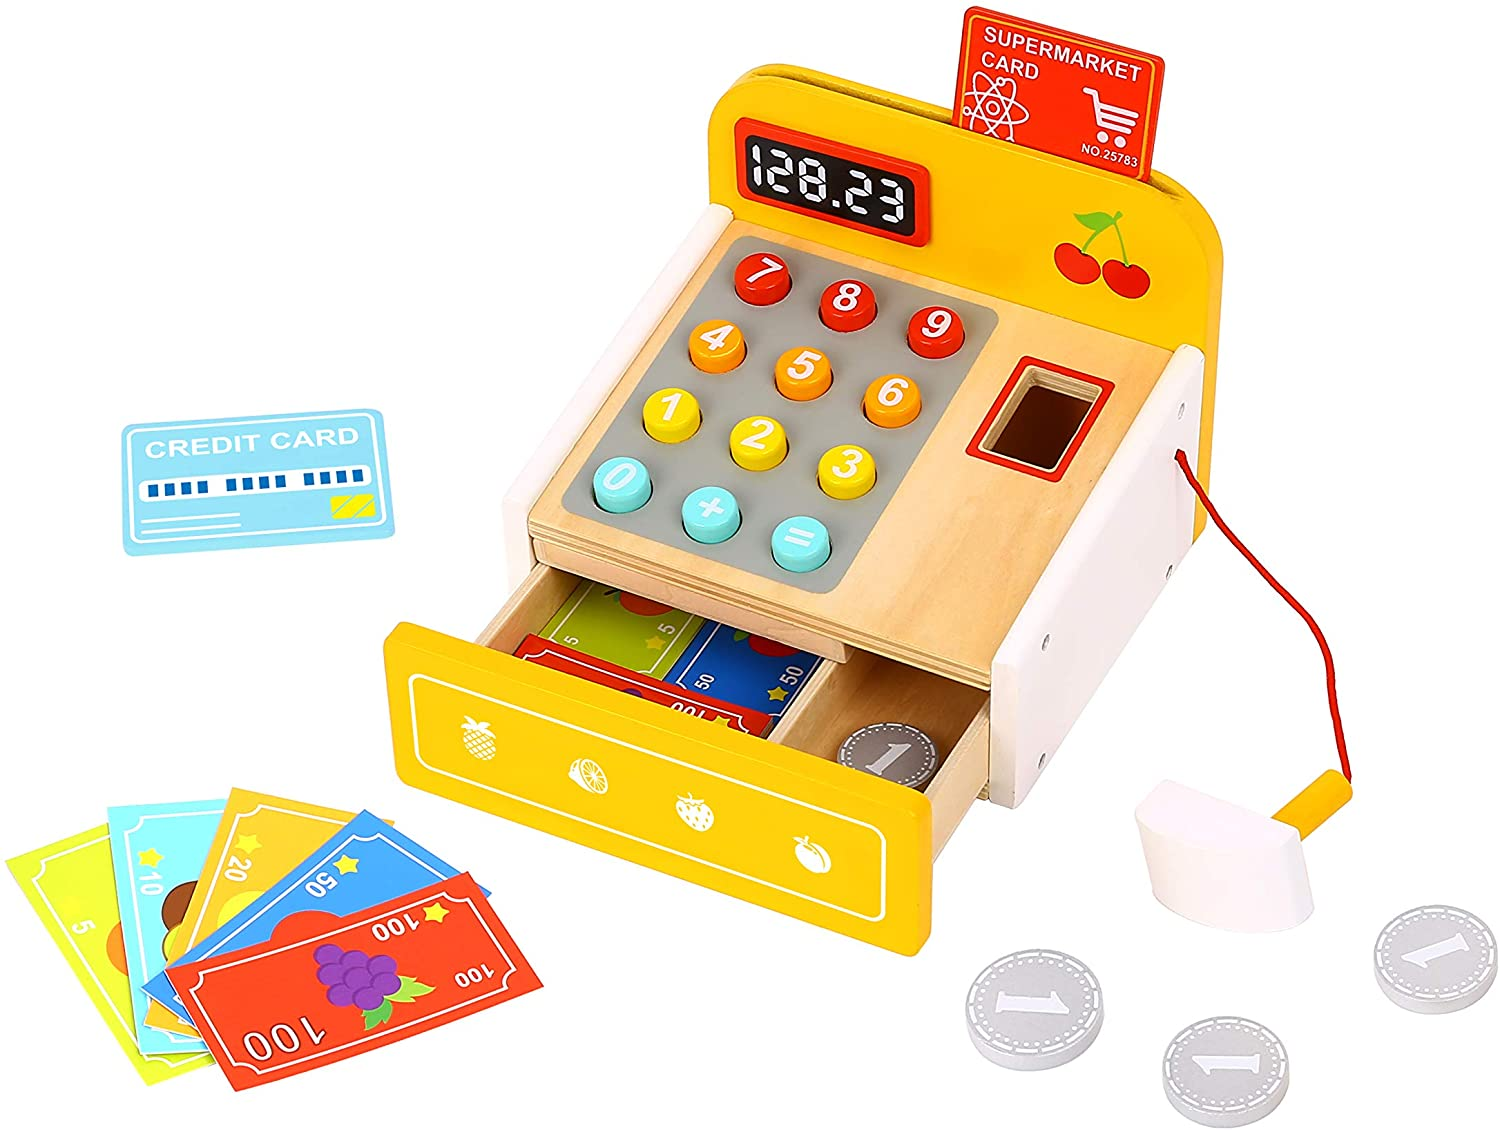 Wooden Cash Register Toy with Wooden Coins, Bills, Credit Cards & Bar Code Scanner, Kids Educational Toy Cashier…